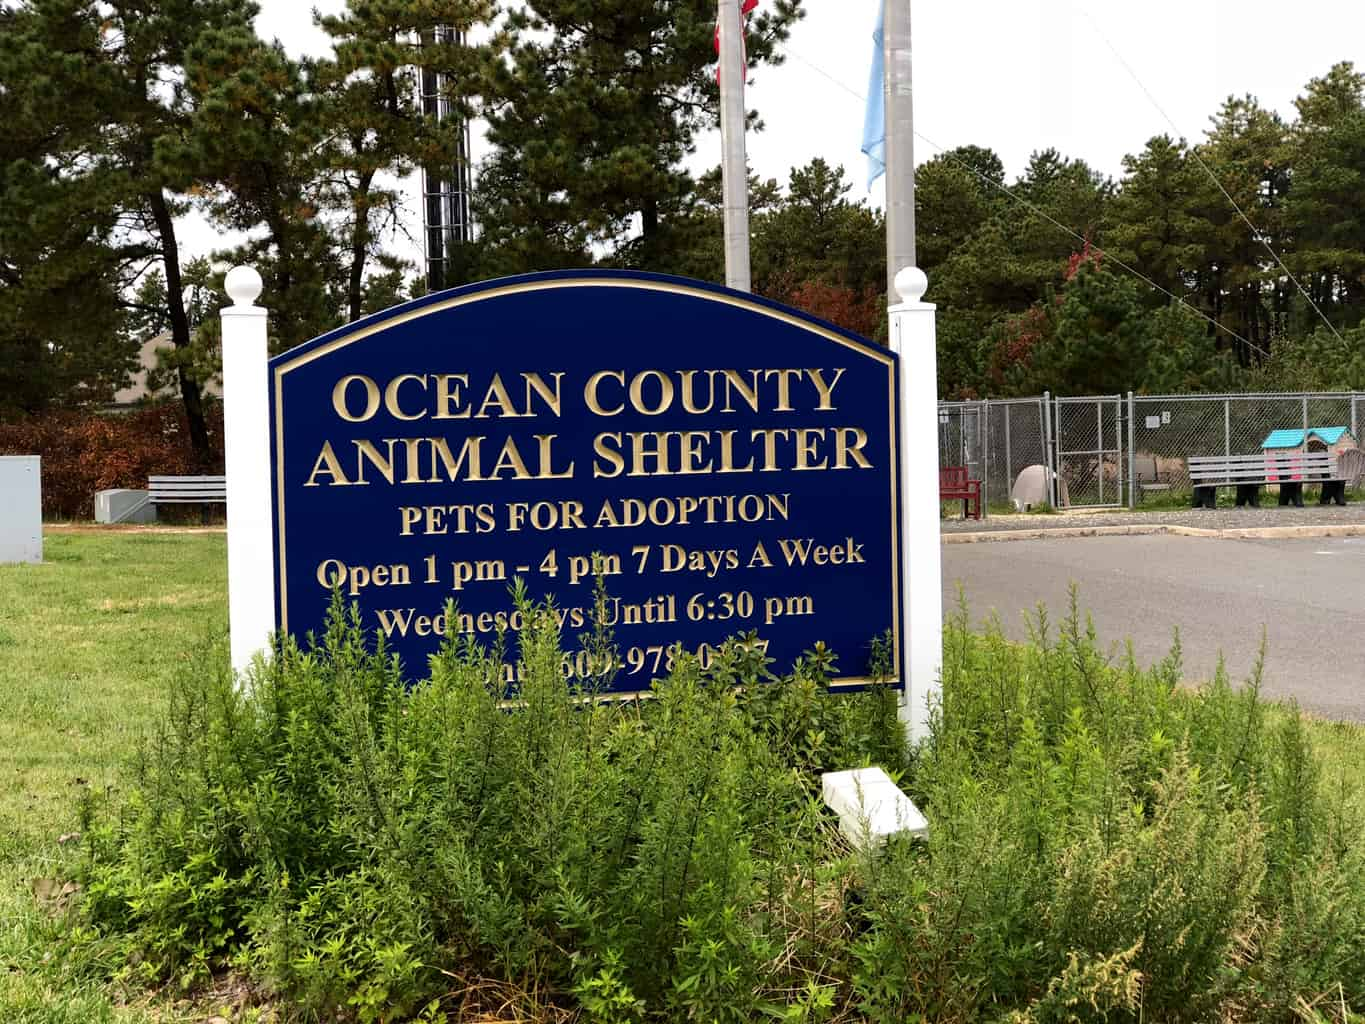 """Local Rescue Organizations Making """"Shelter Animals Count"""